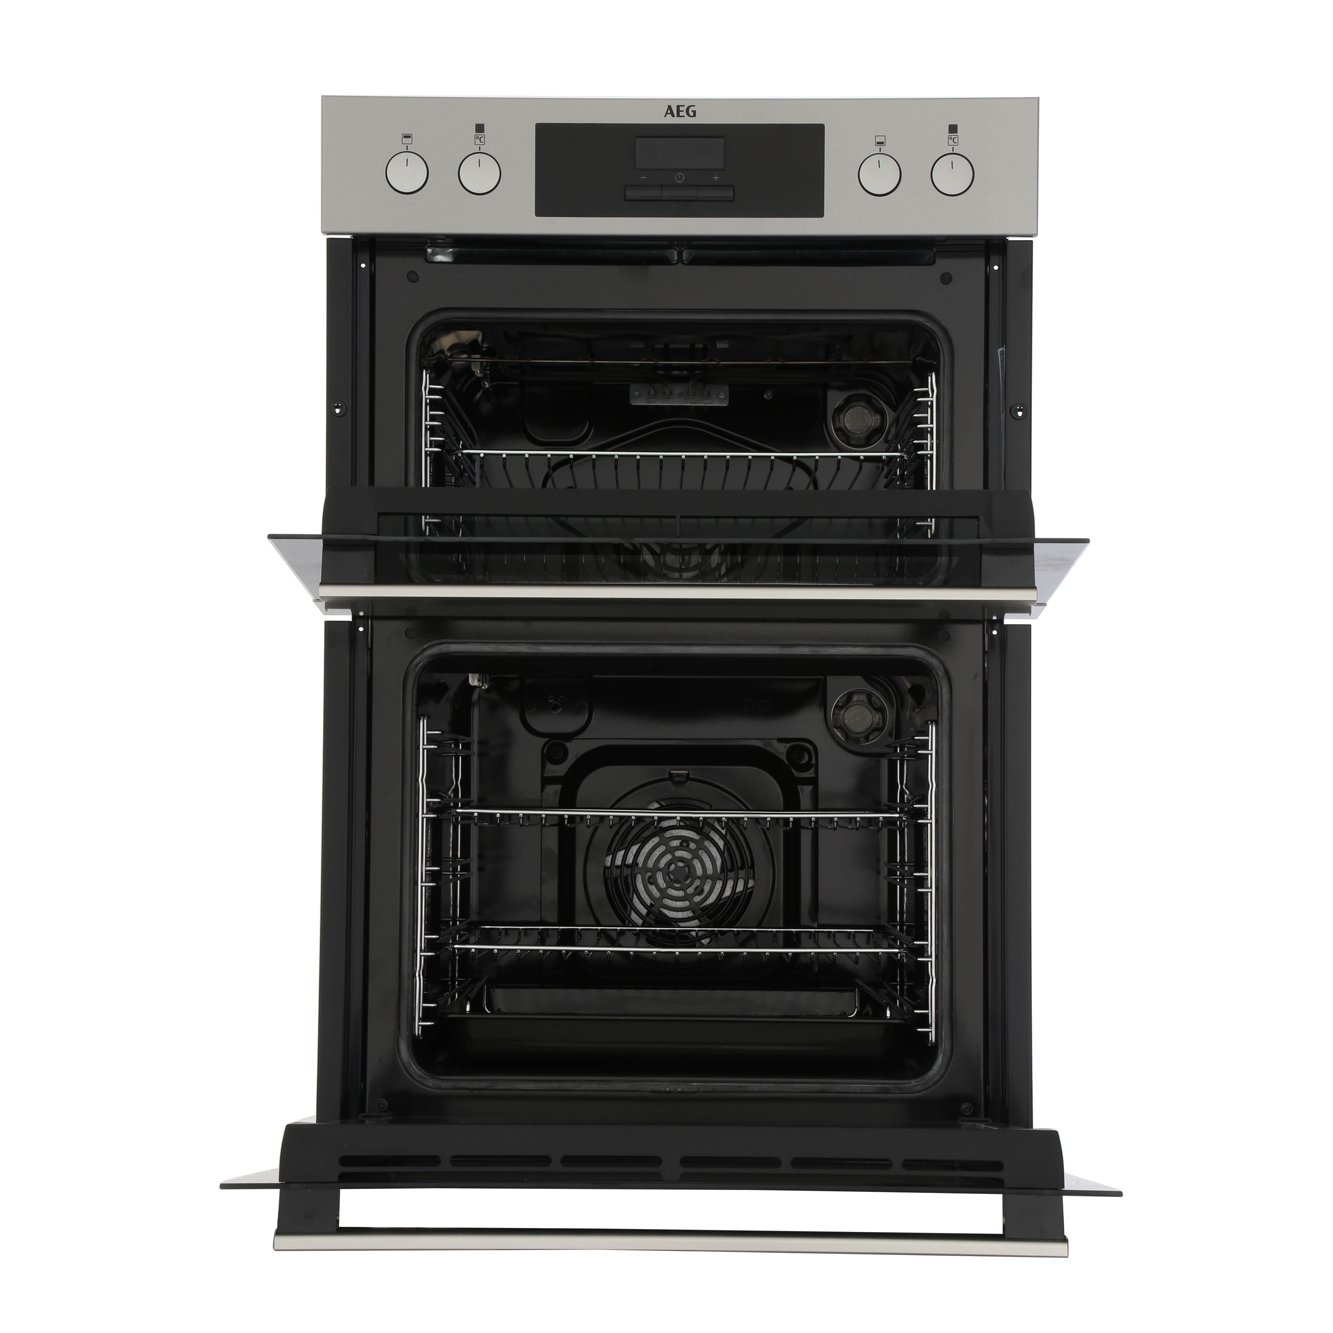 Buy Aeg Deb331010m Double Built In Electric Oven